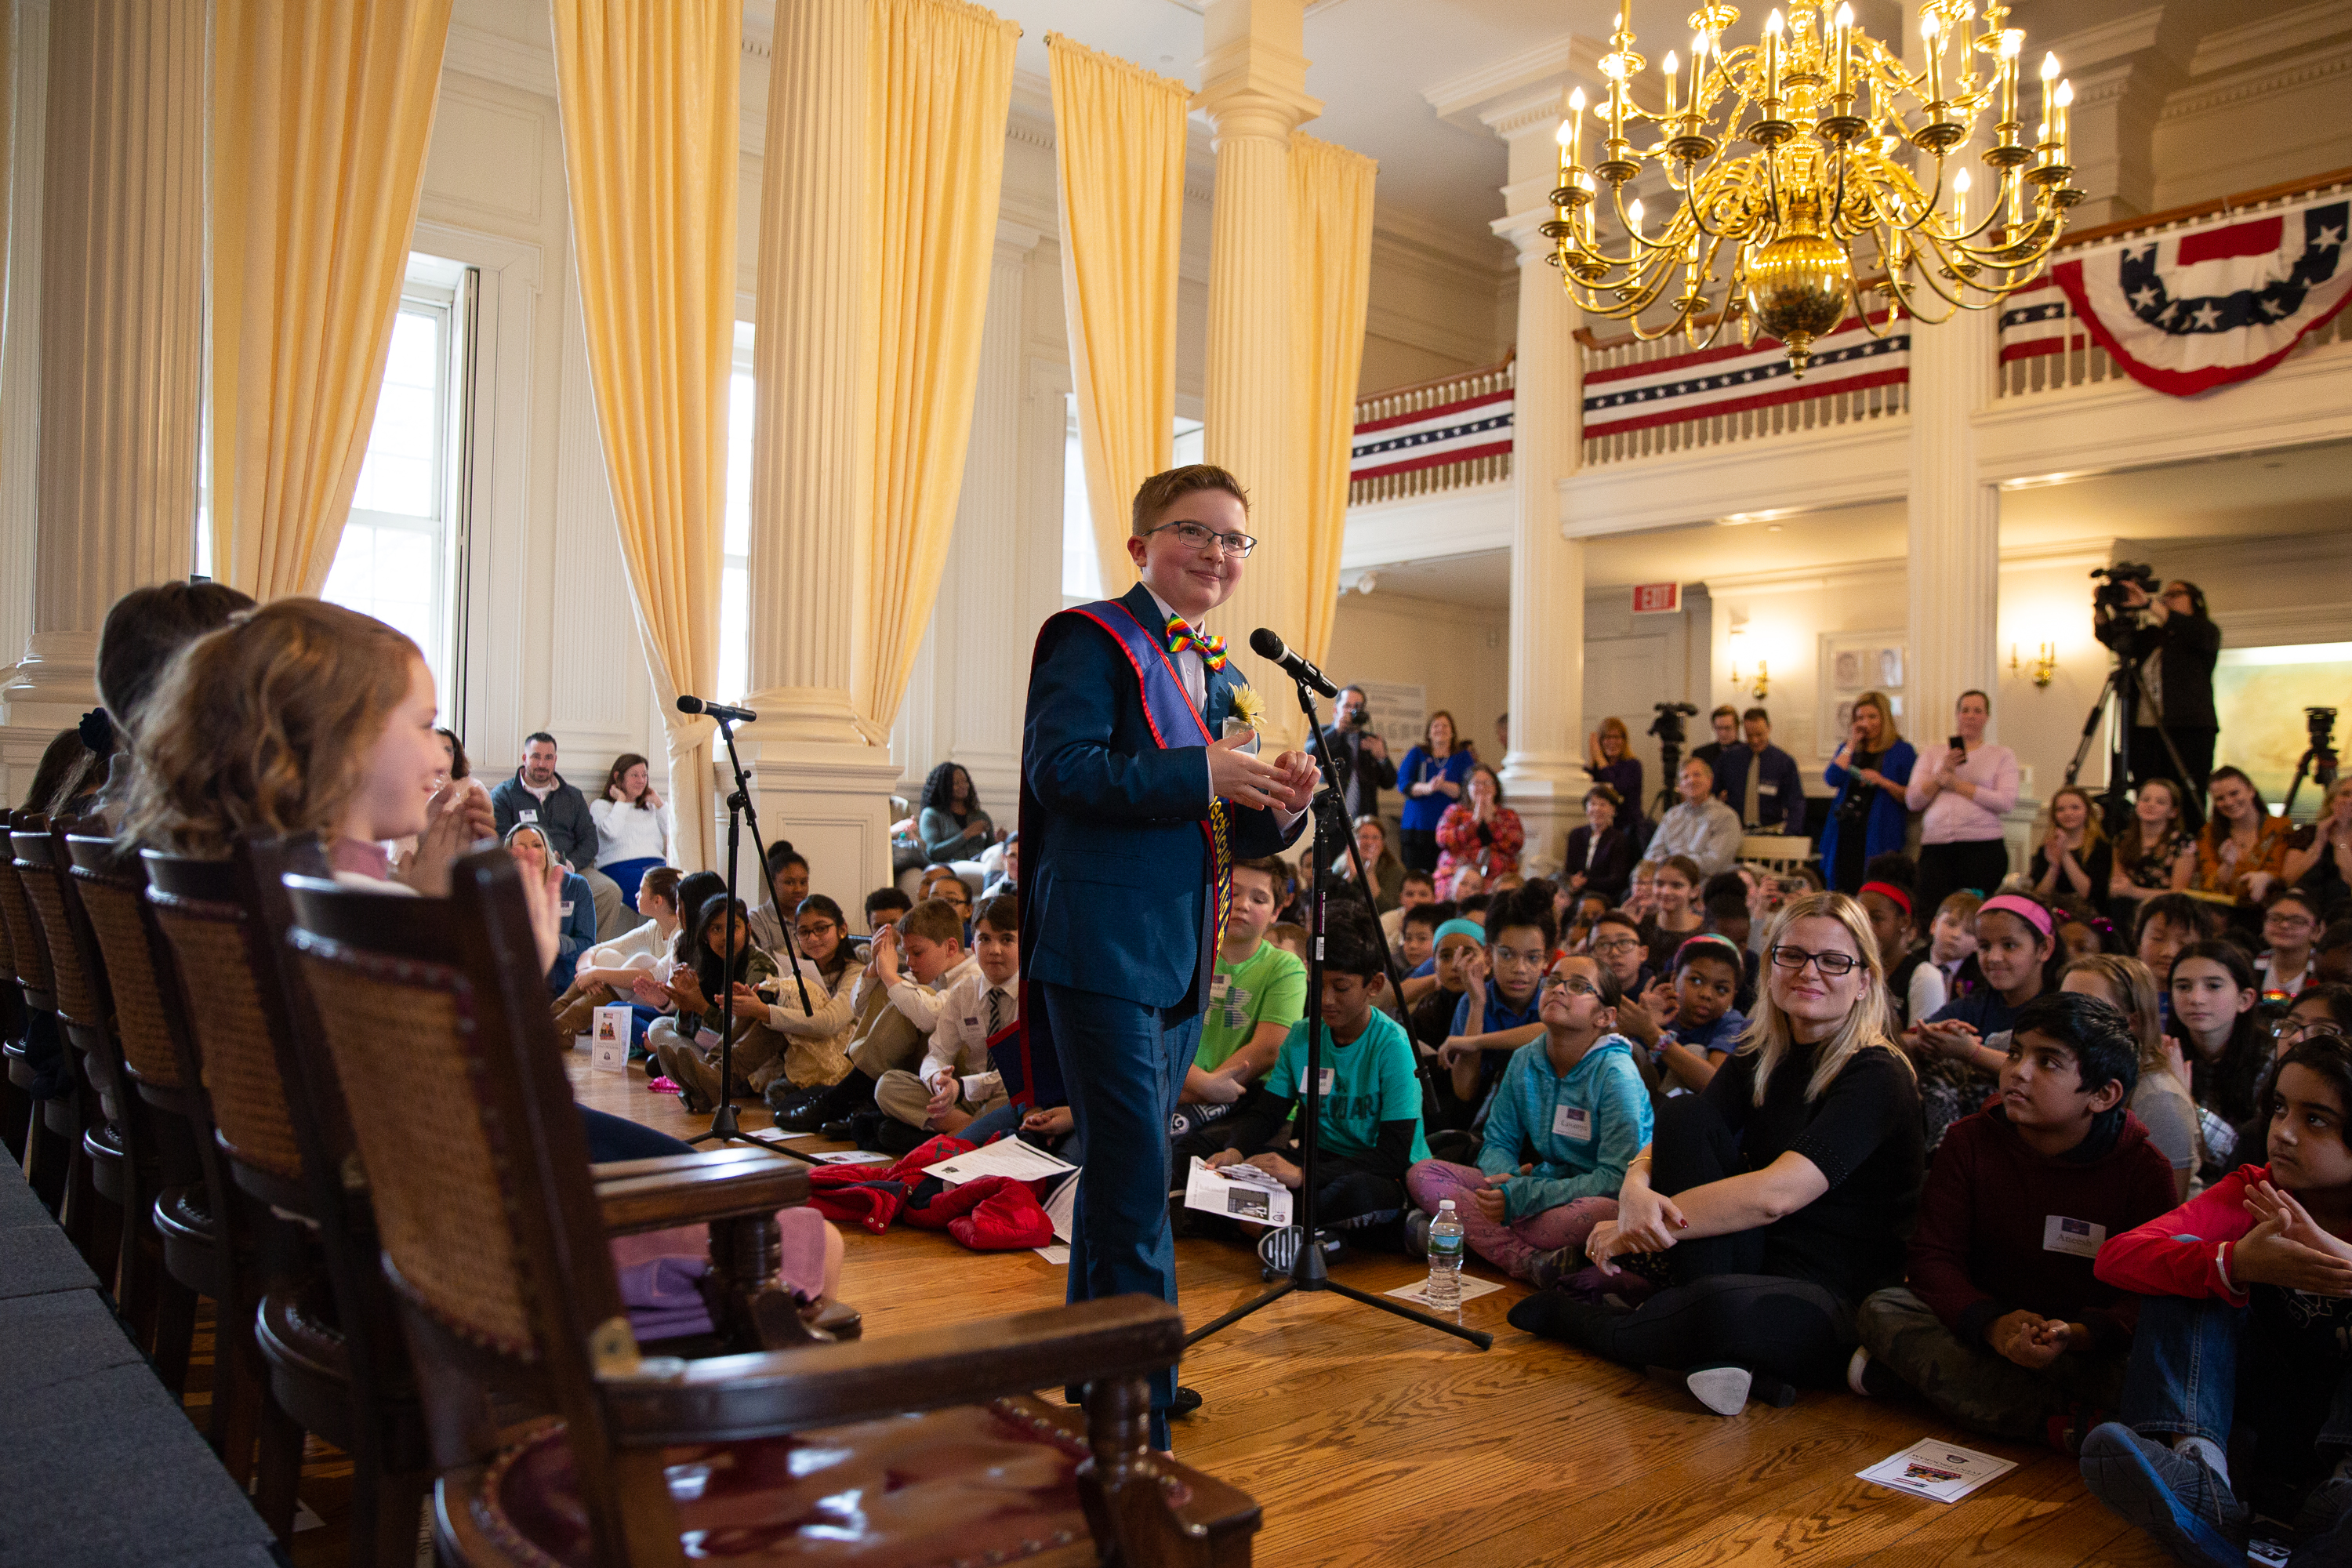 CT 'Kid Governor' calls for support of LGBTQ issues